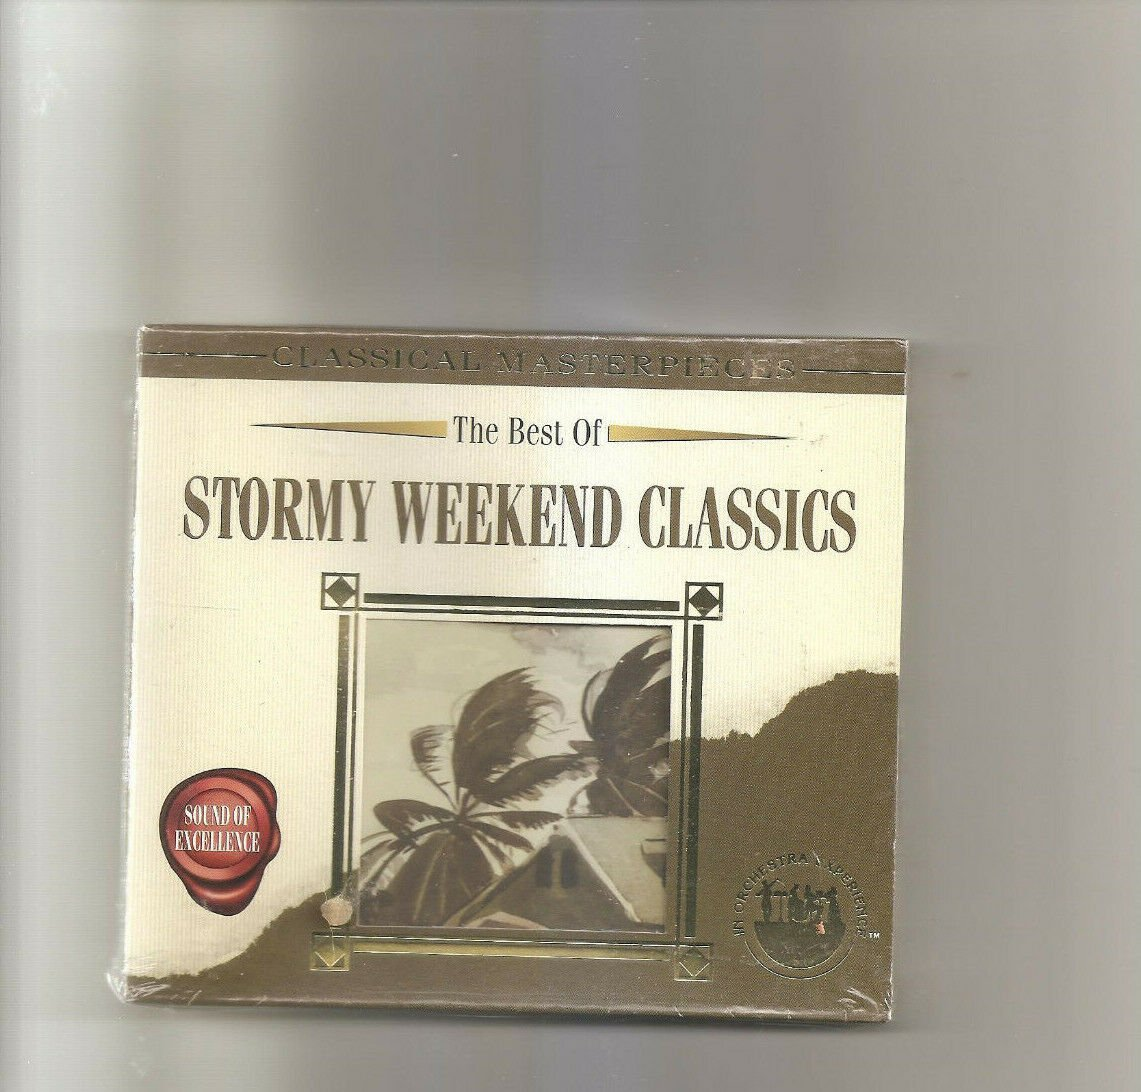 The Best of Stormy Weekend Classics